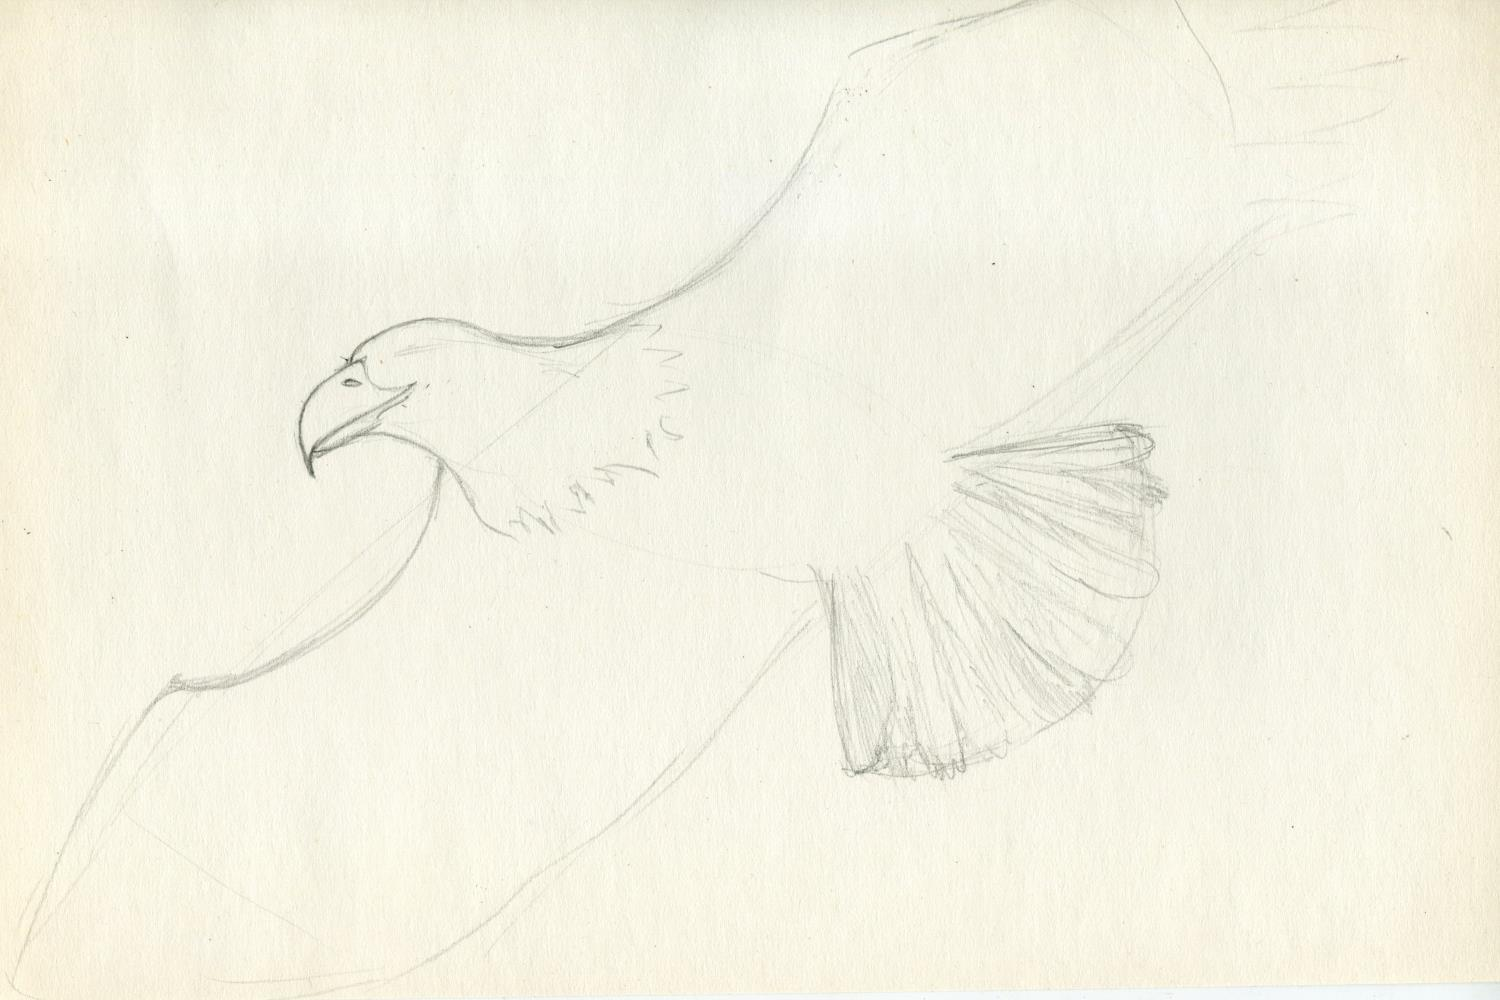 How to draw eagle pencil step by step? Step 3.